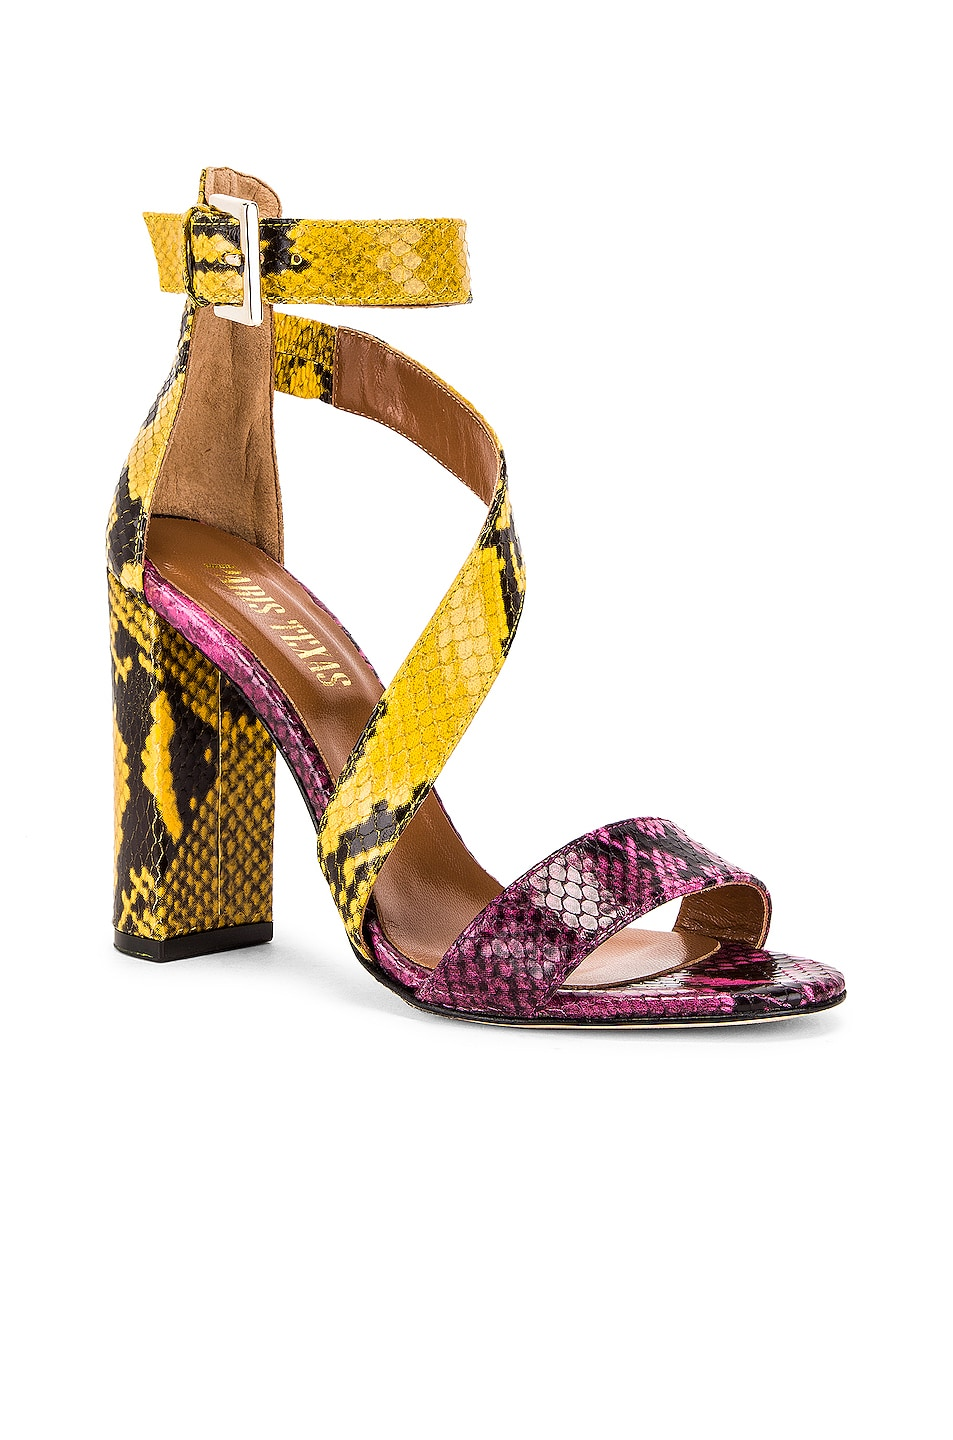 Image 2 of Paris Texas Diagonal Strap Snake 100 Sandal Heel in Fuchsia & Yellow